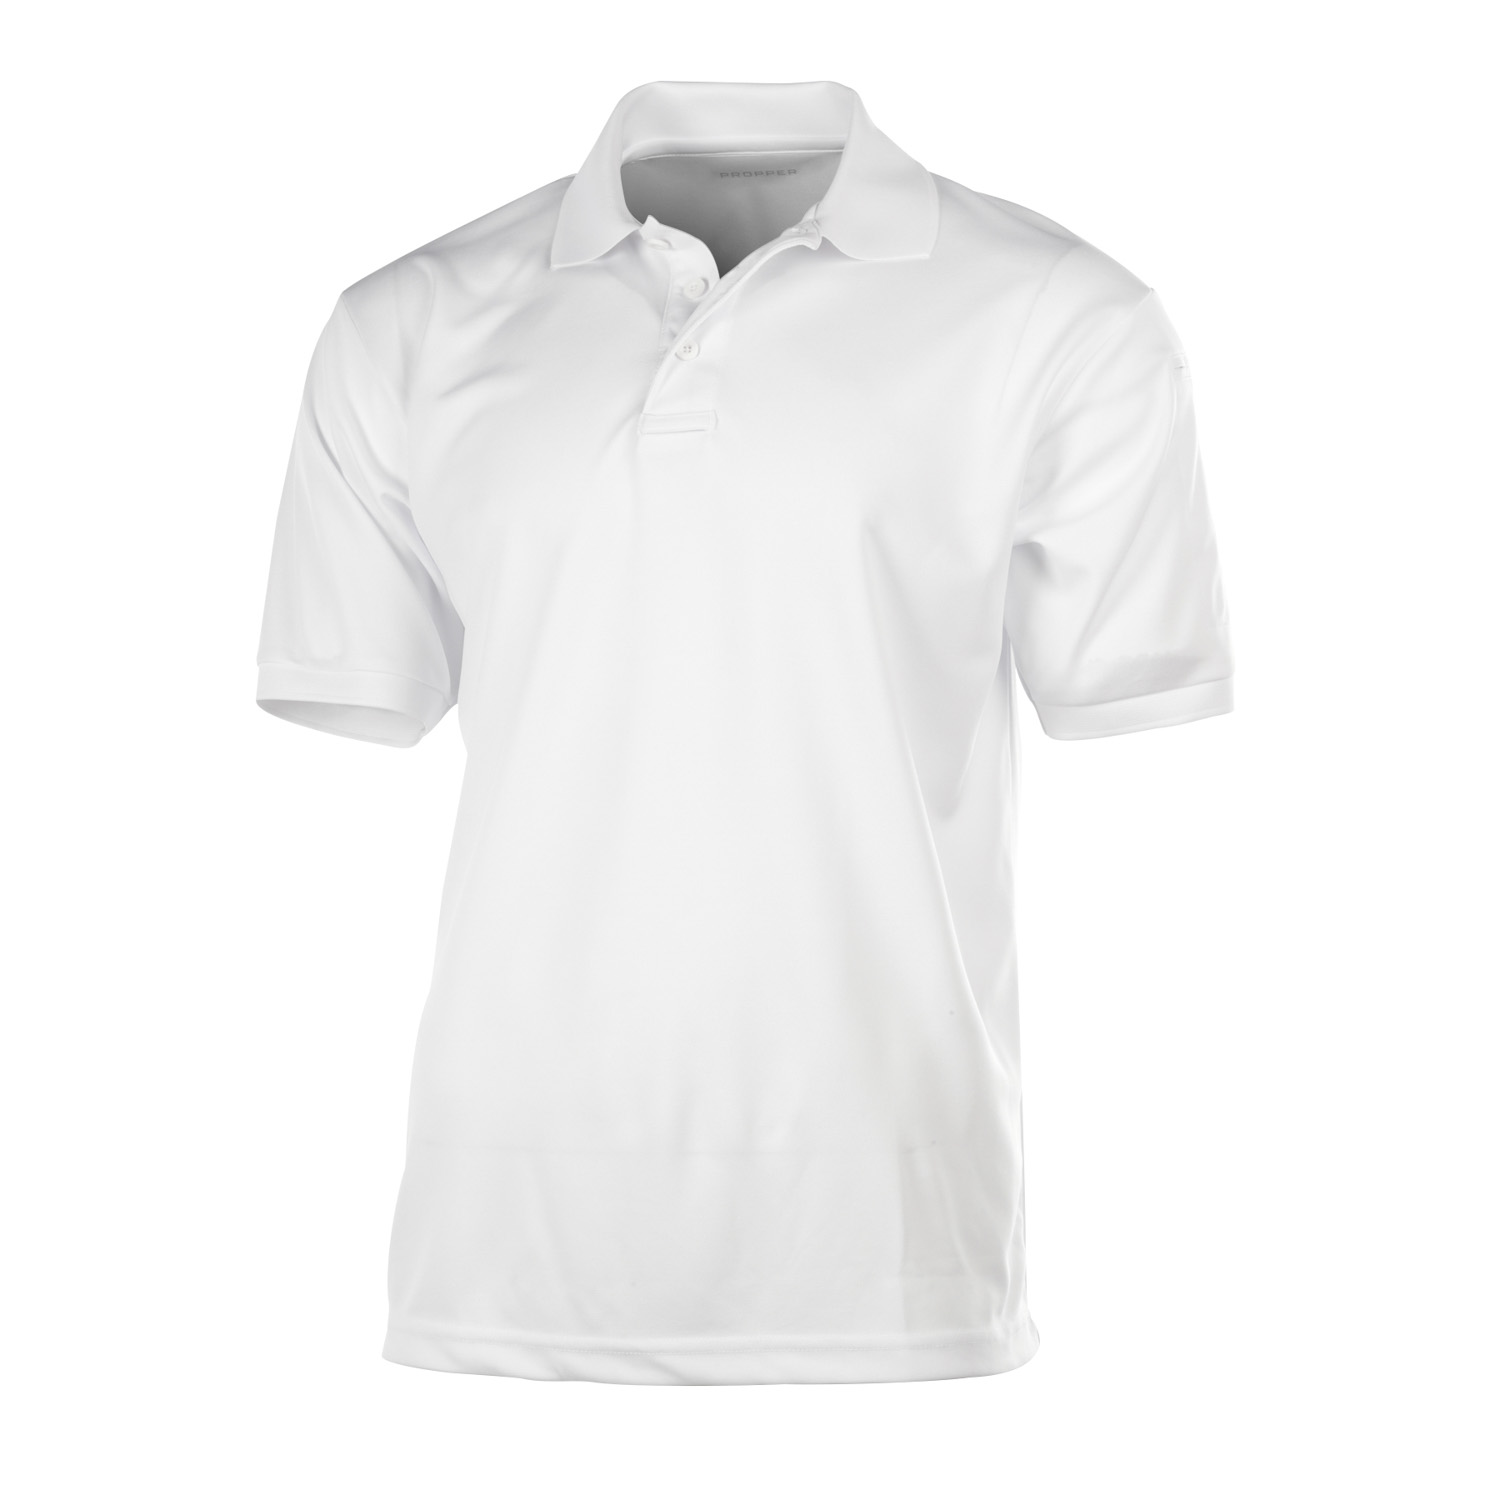 Propper Women's Uniform Polo